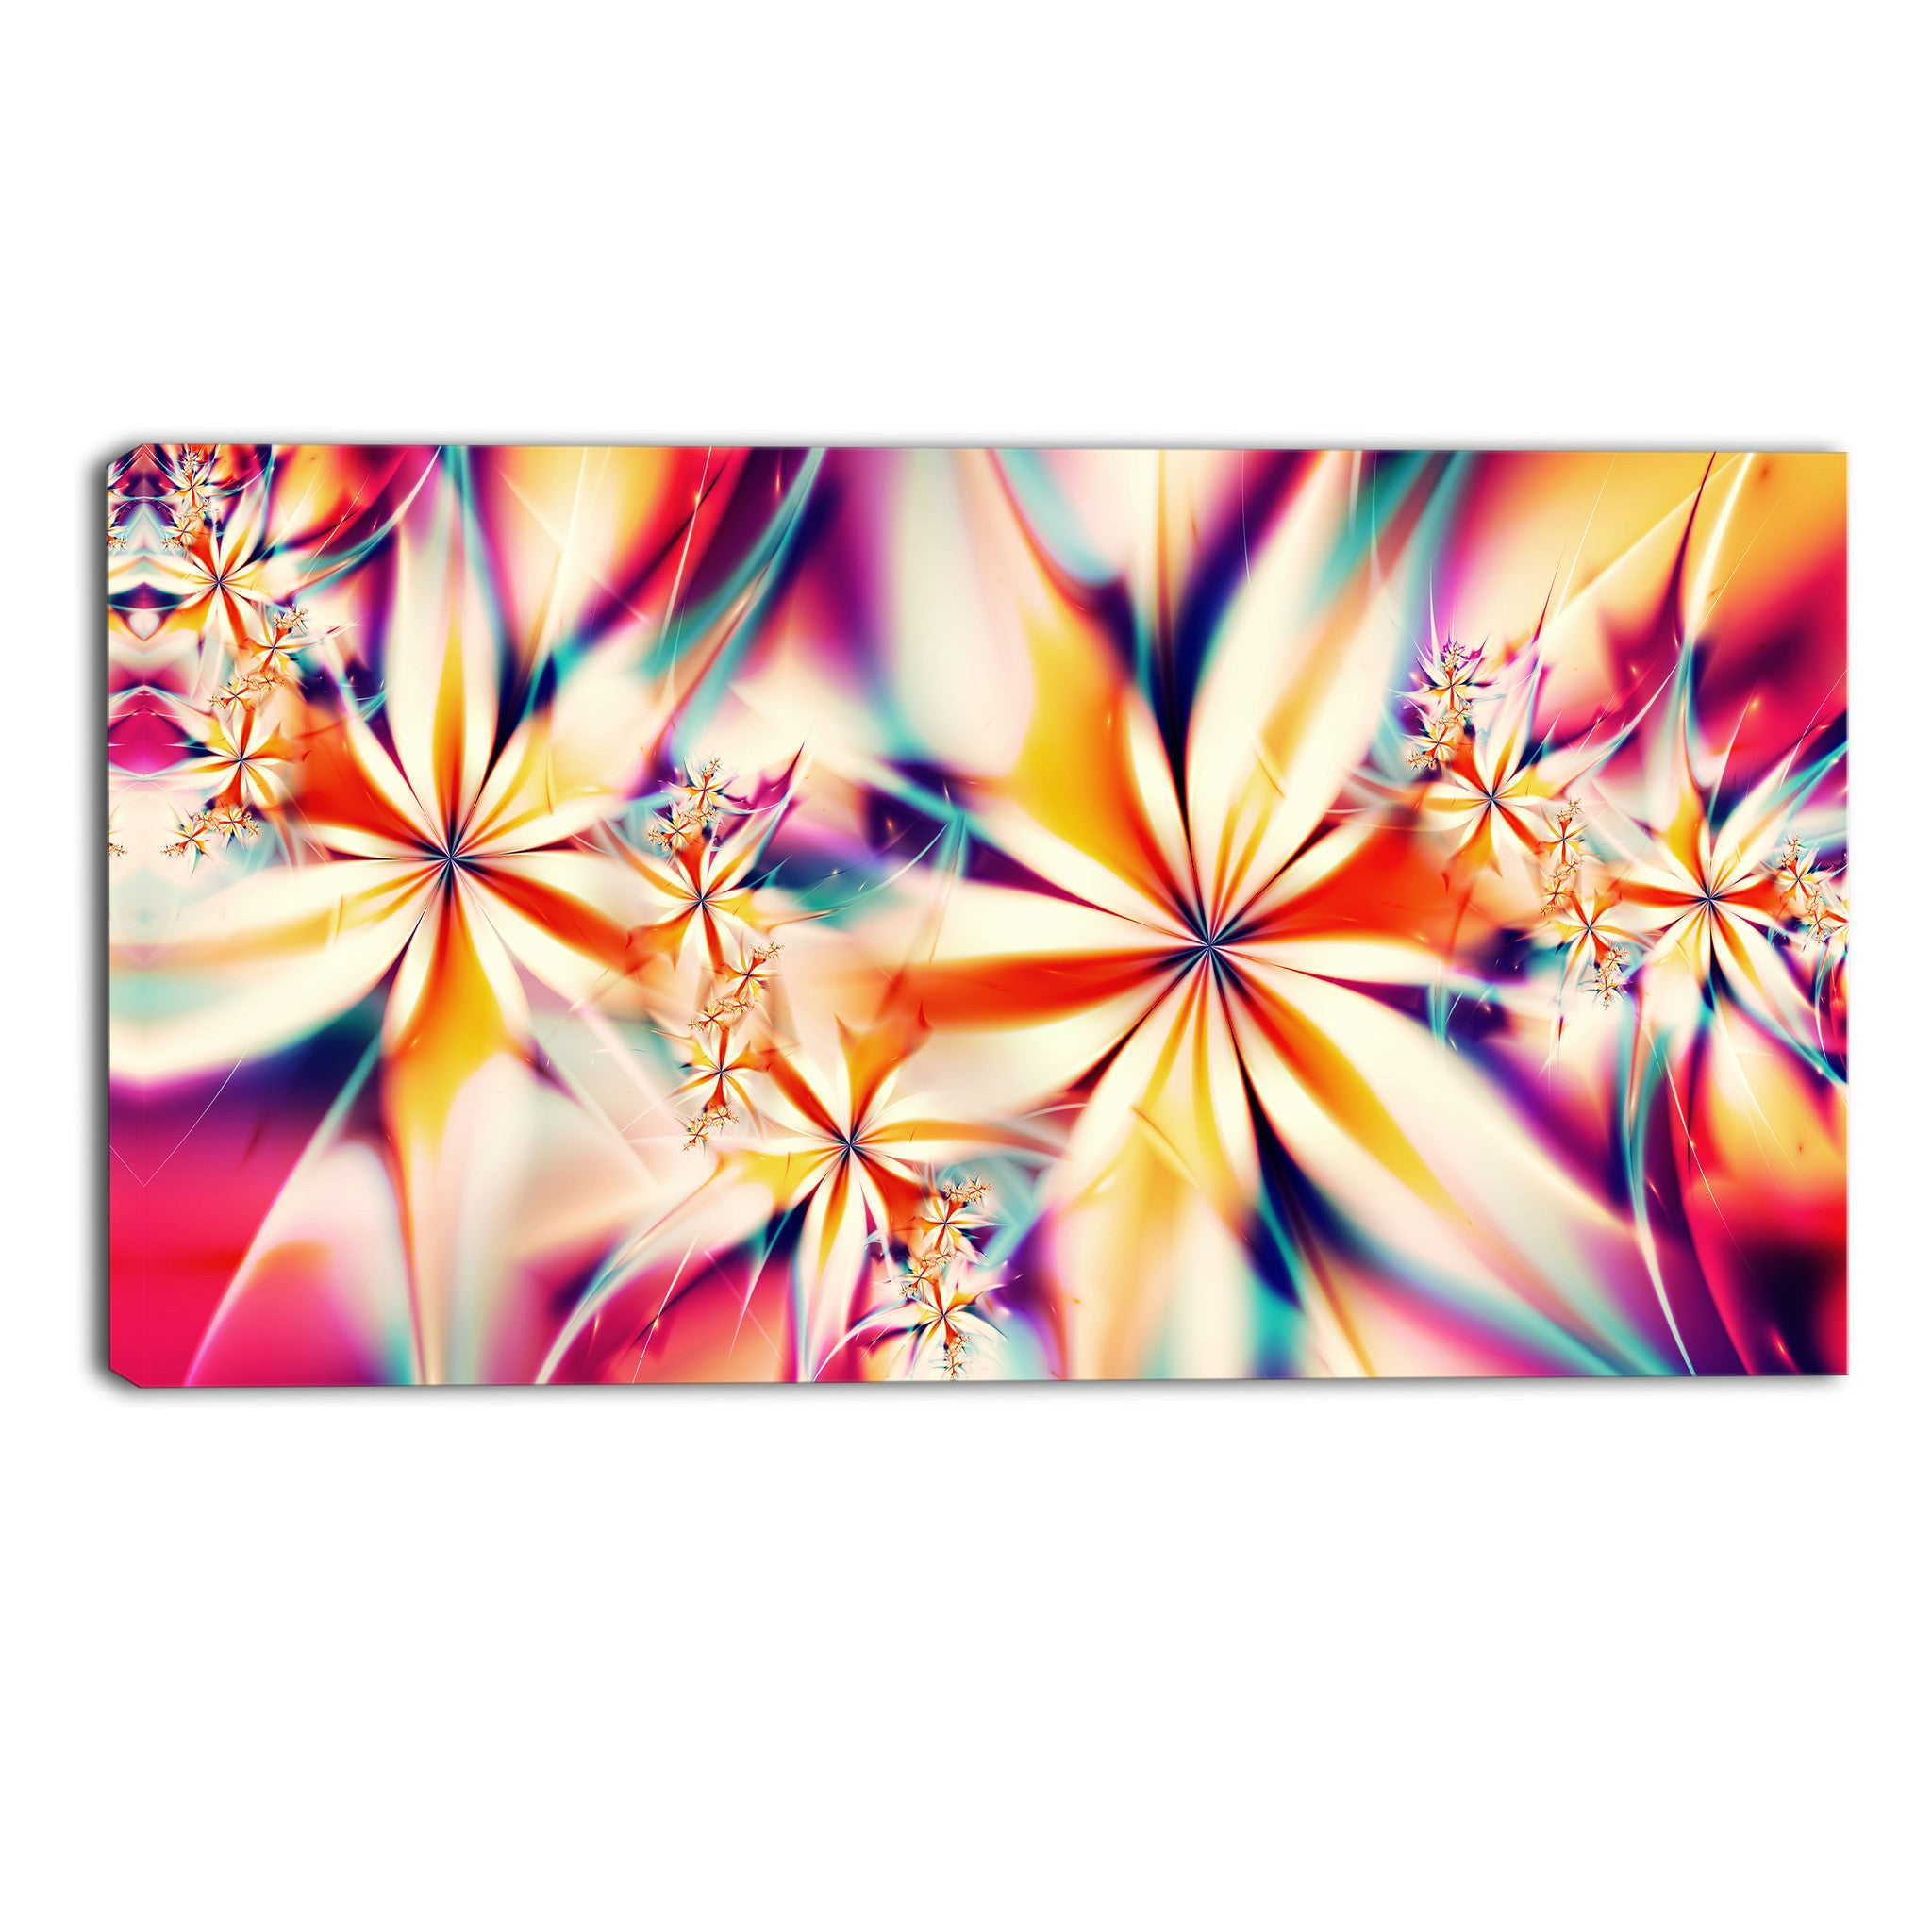 Vibrant Flurry Abstract Canvas Wall Art Print